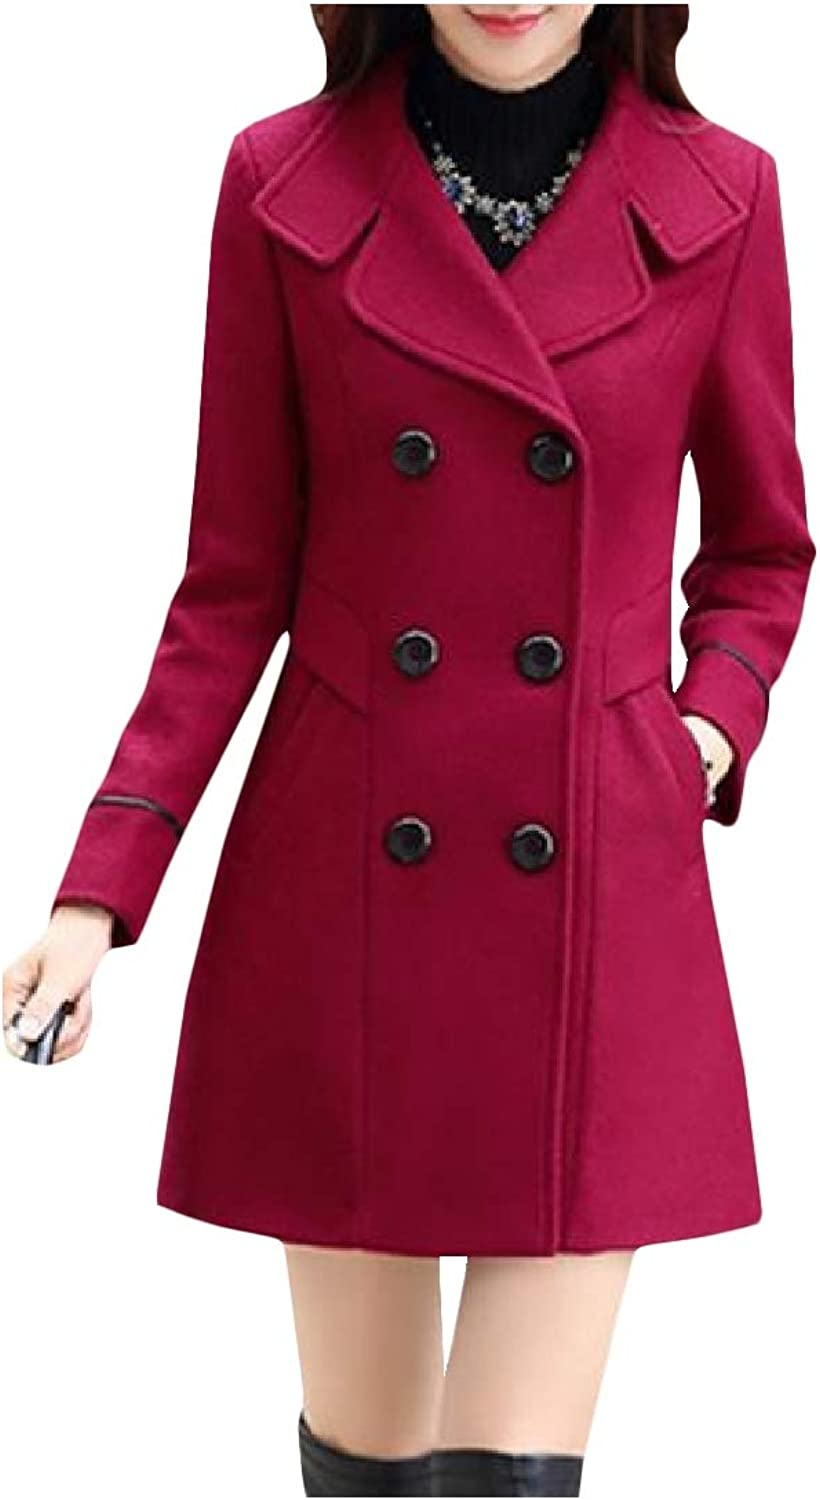 Tootca Women's DoubleBreasted OL WoolBlend Solid Trench Coat Outerwear